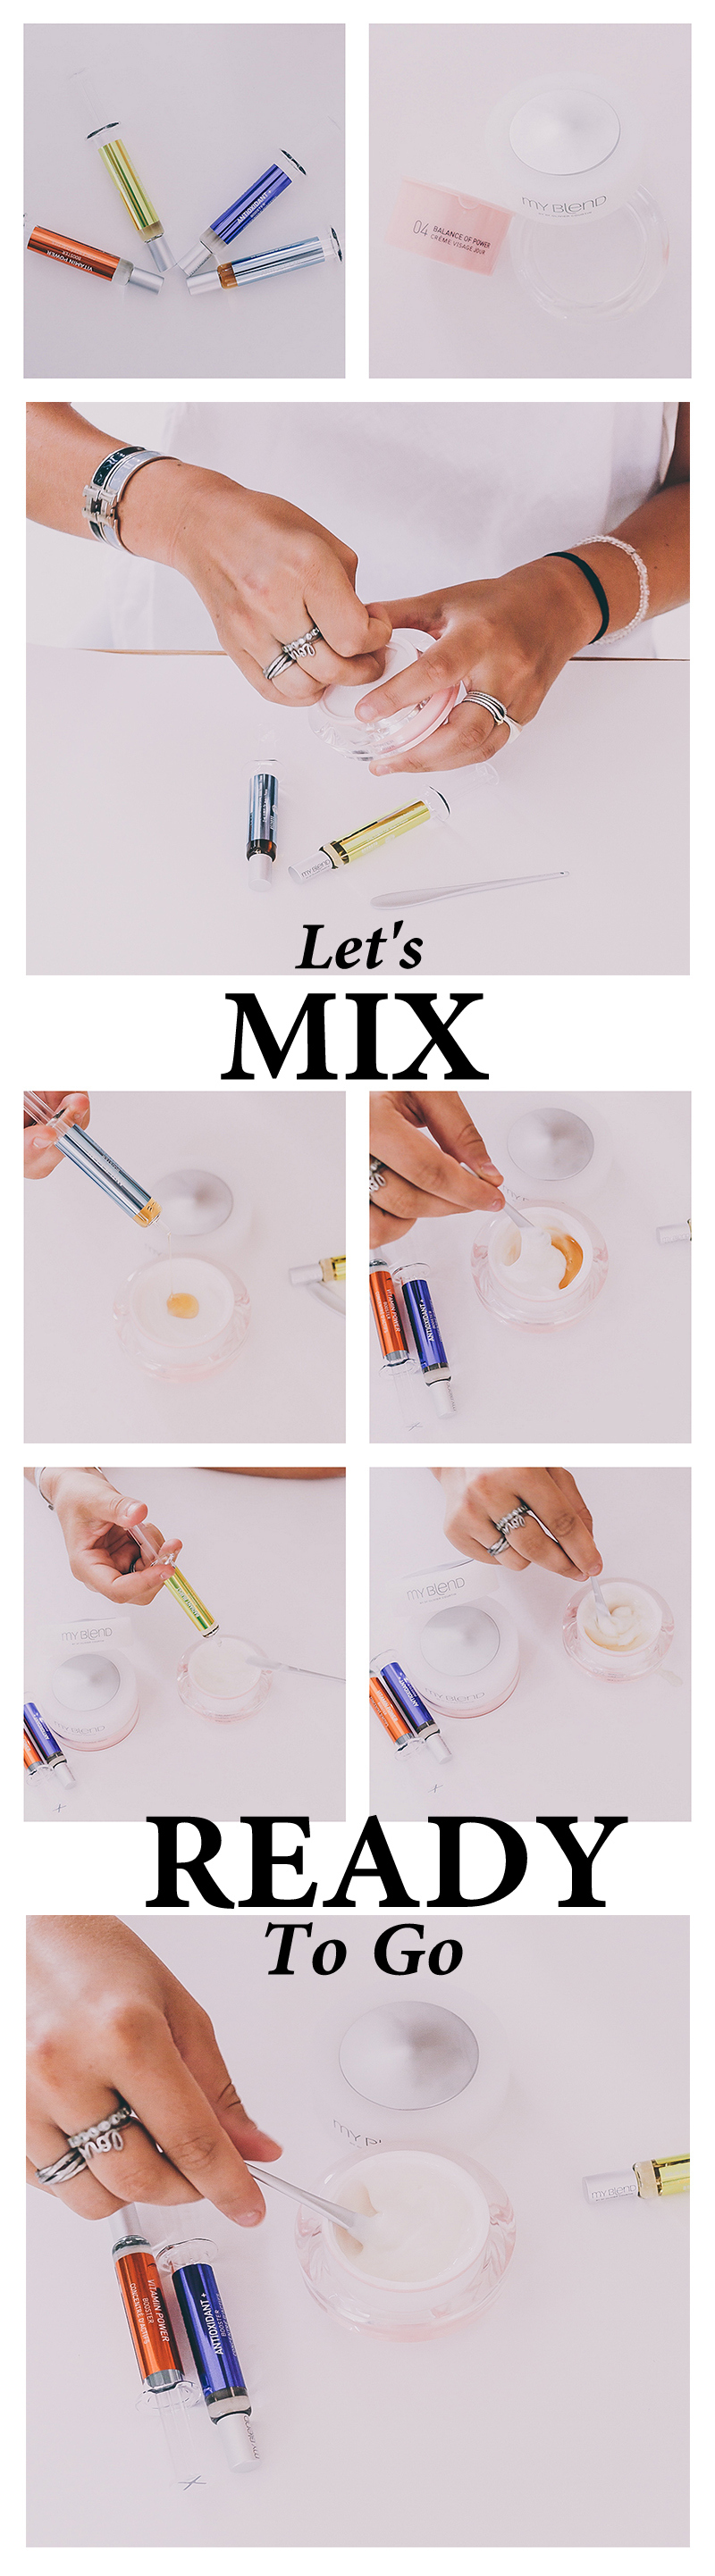 my blend how to mix creams and boosters